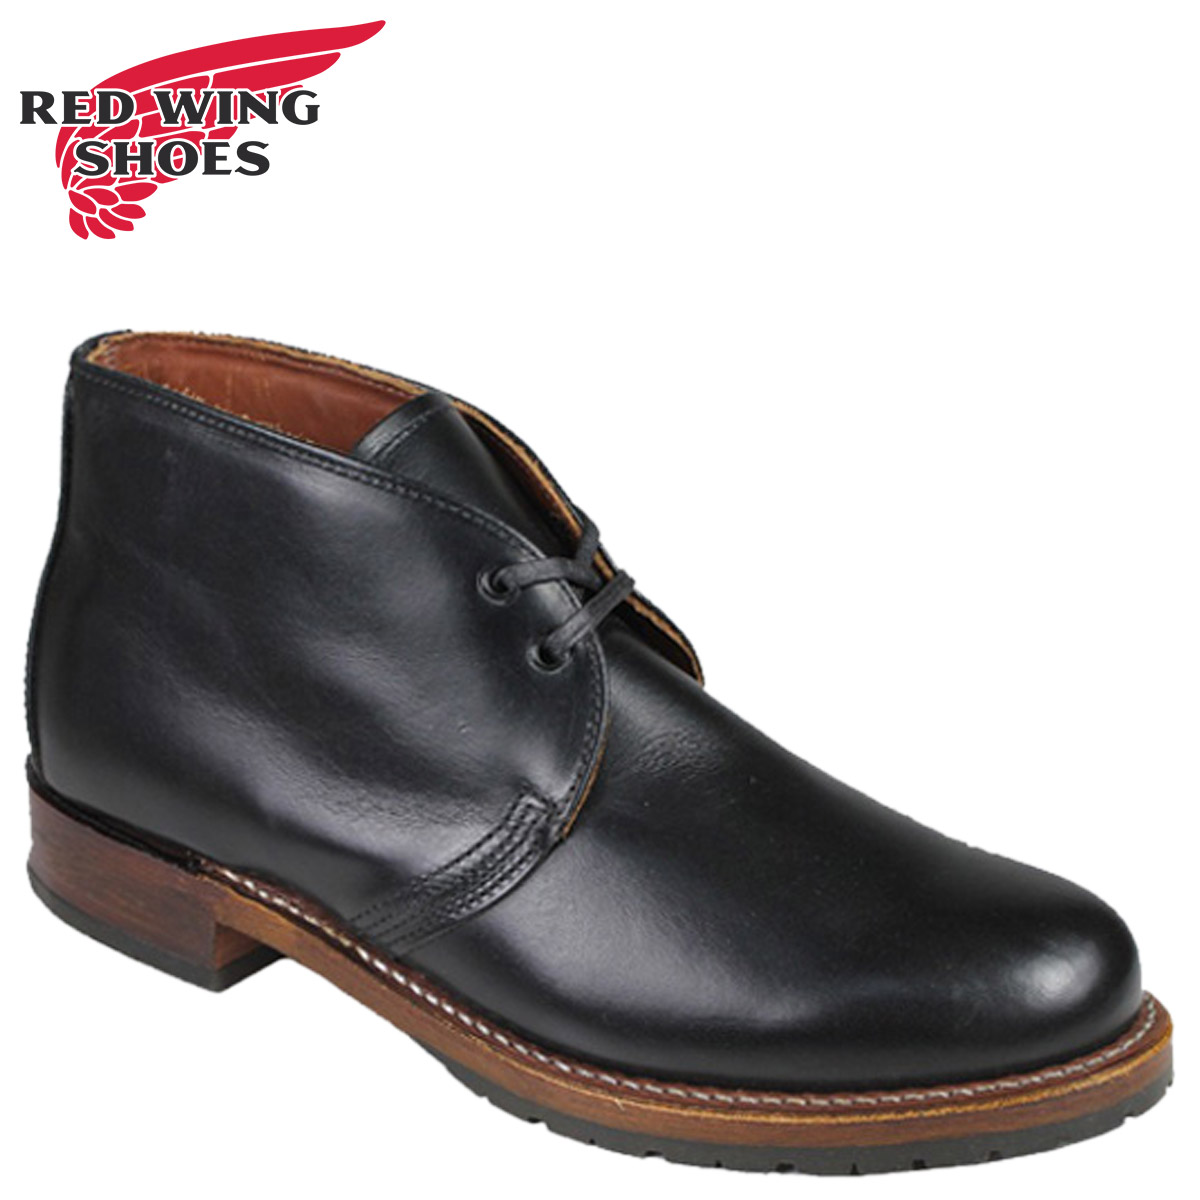 Whats up Sports | Rakuten Global Market: RED WING Red Wing Beckman chukka  boots BECKMAN CHUKKA chukka D wise 9024 Red Wing work boots men